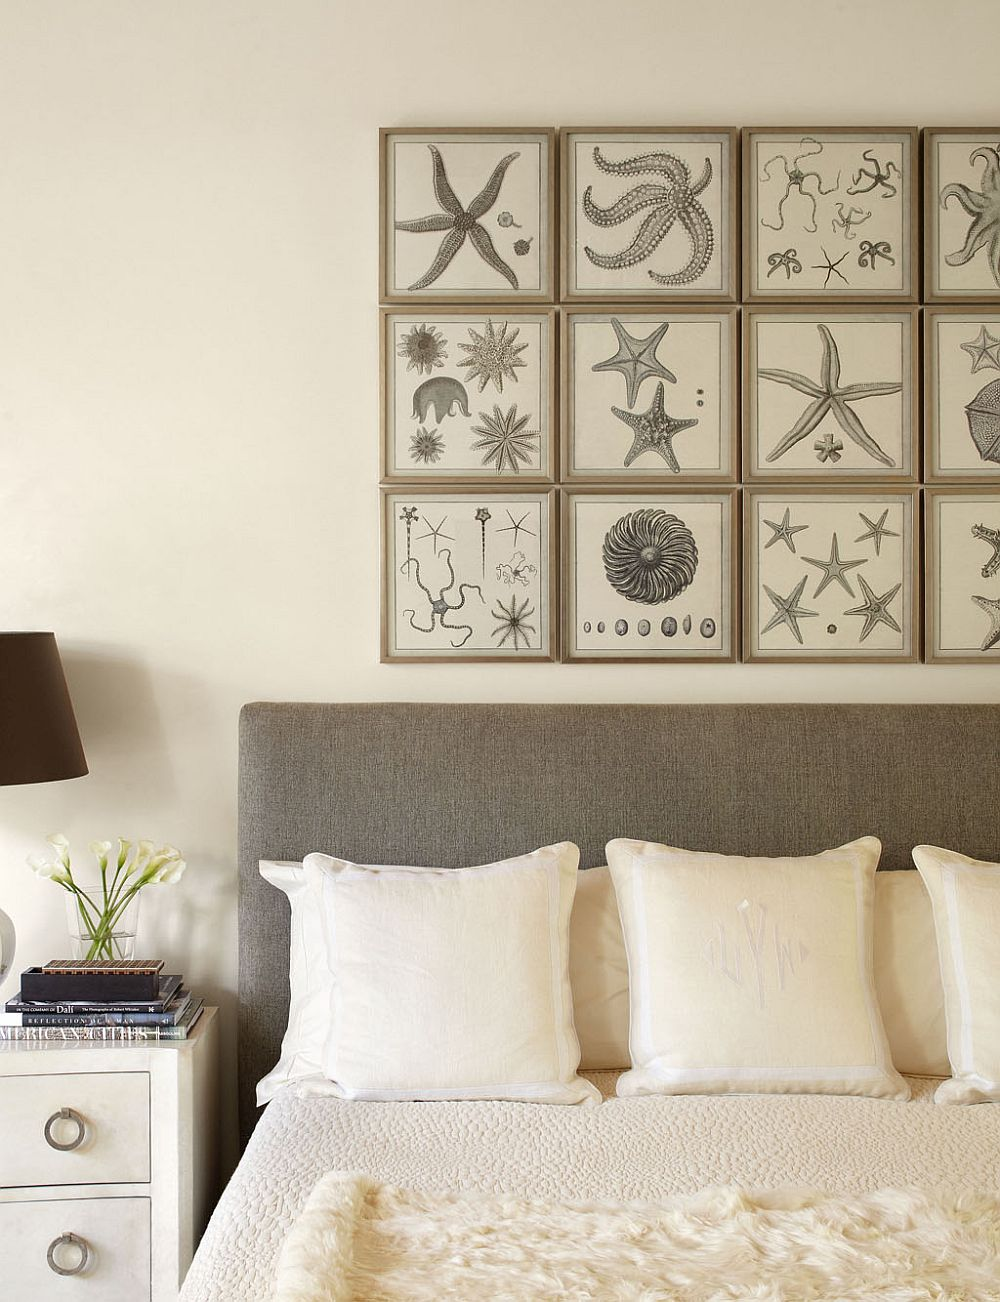 Framed natural prints serve as art work in this modern white bedroom